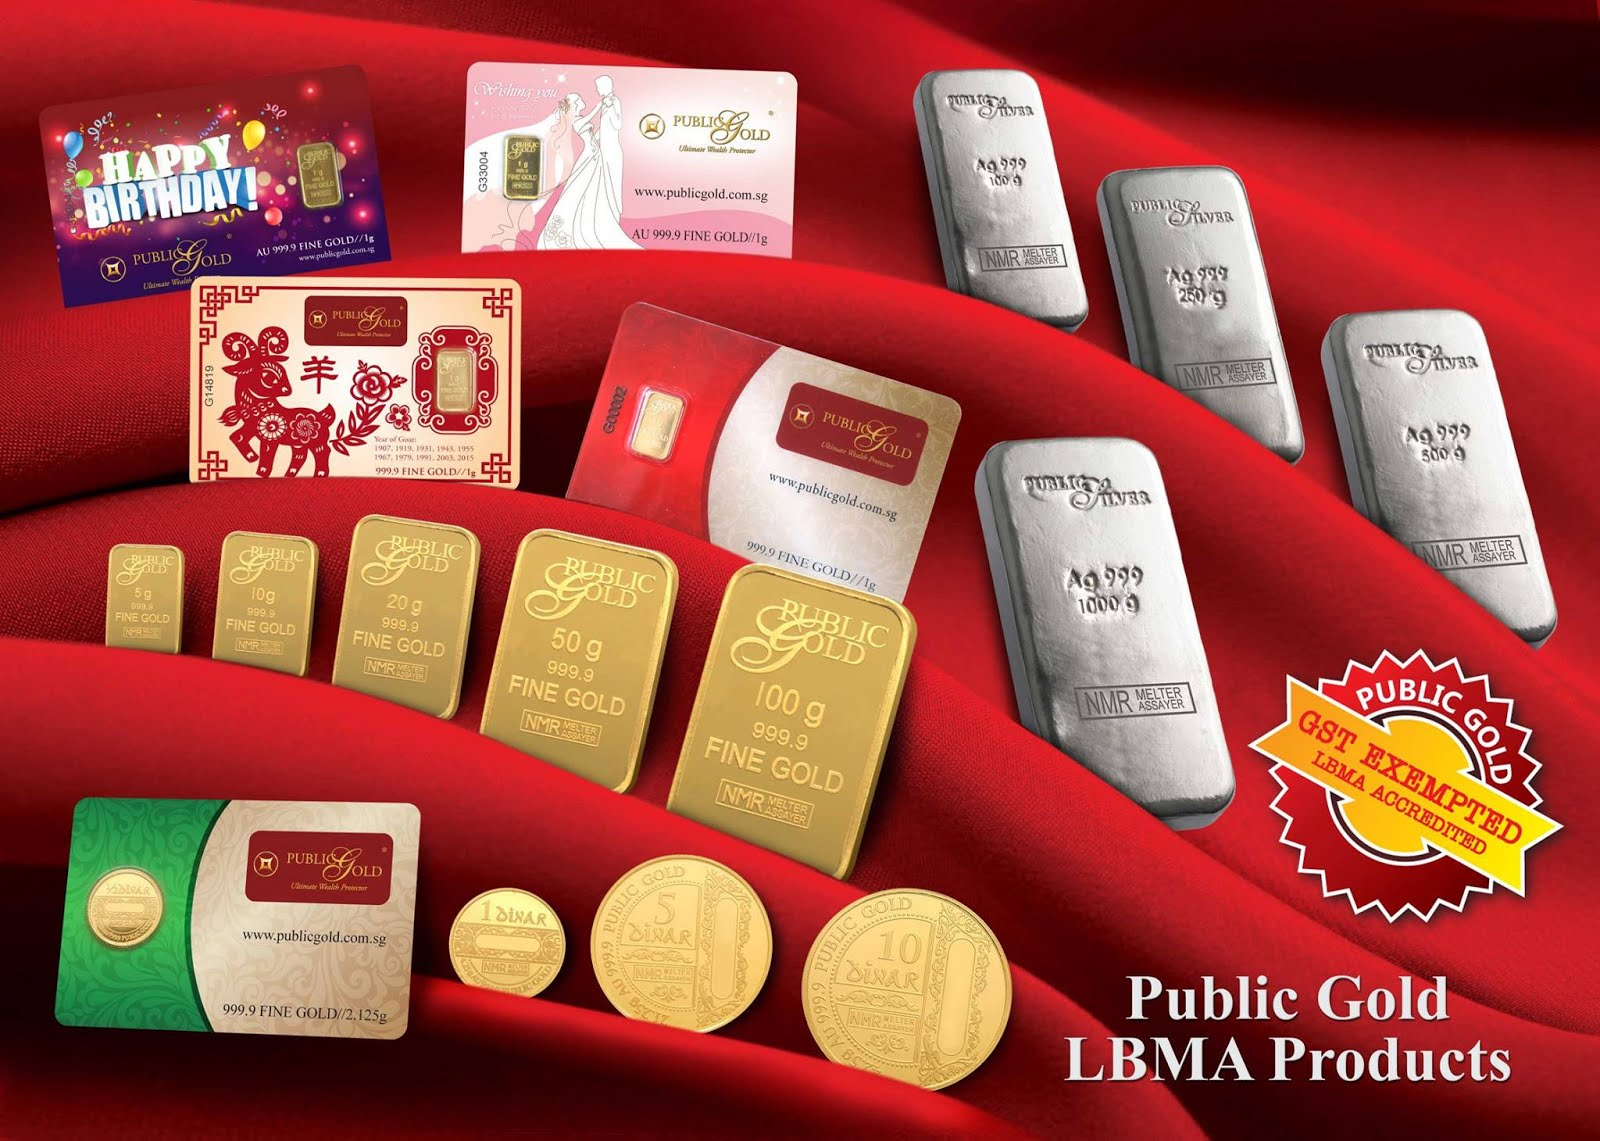 LBMA PRODUCTS